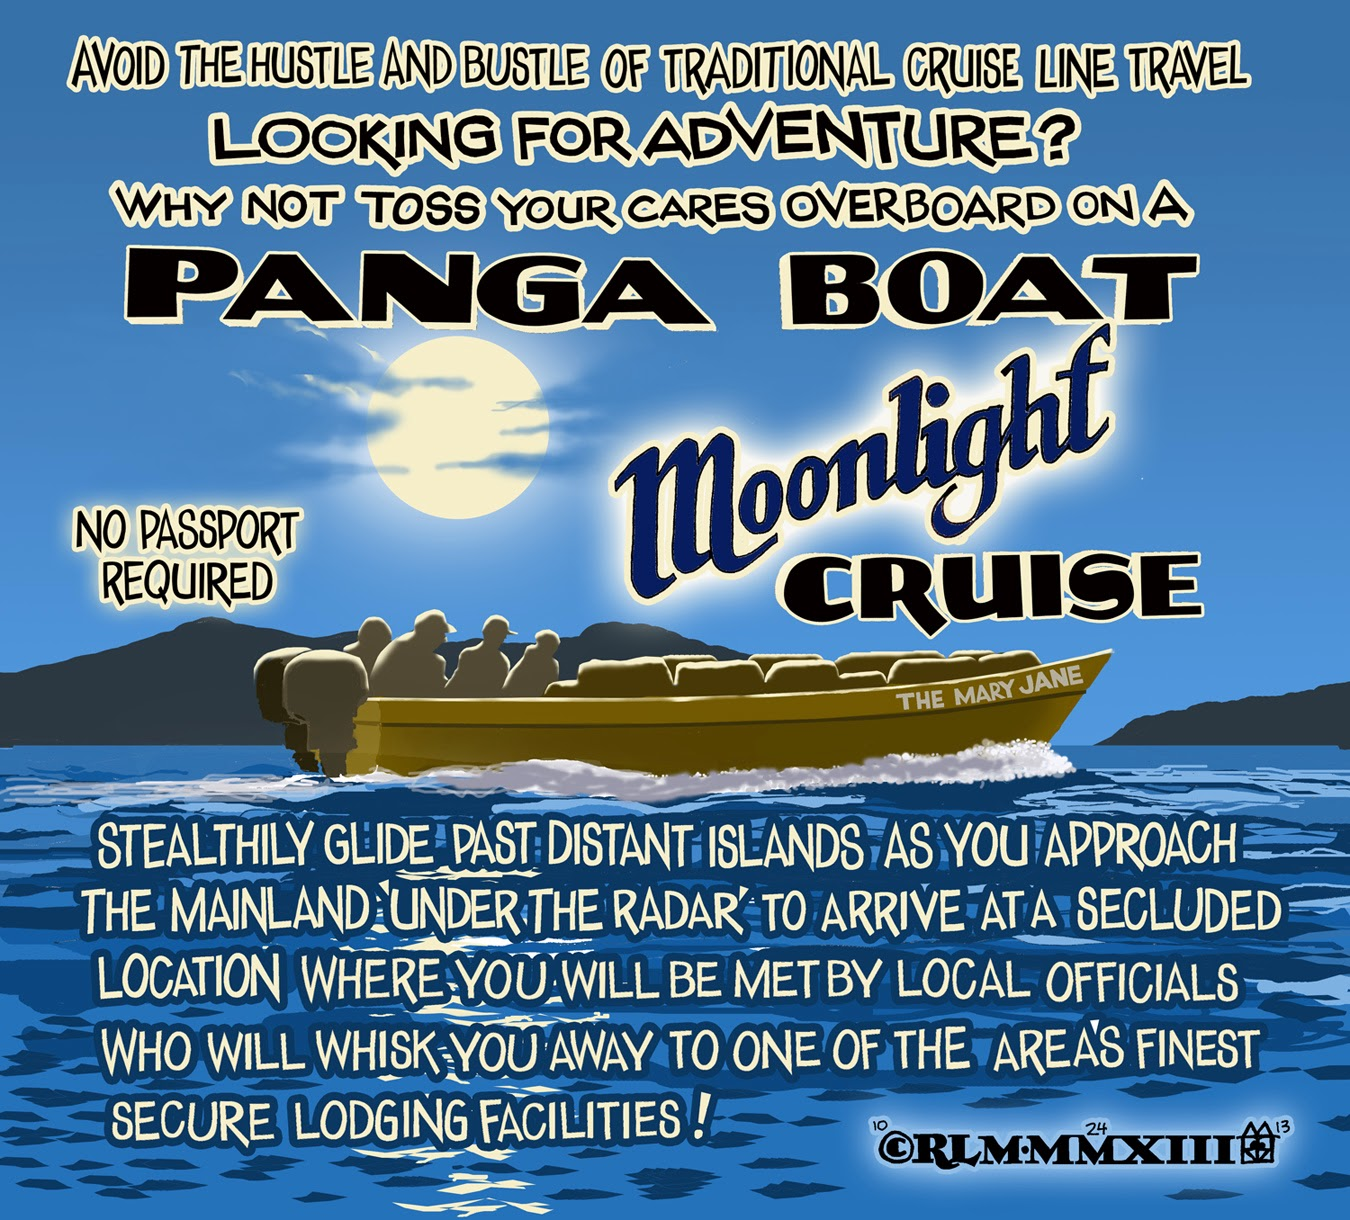 PANGA BOAT MOONLIGHT CRUISE